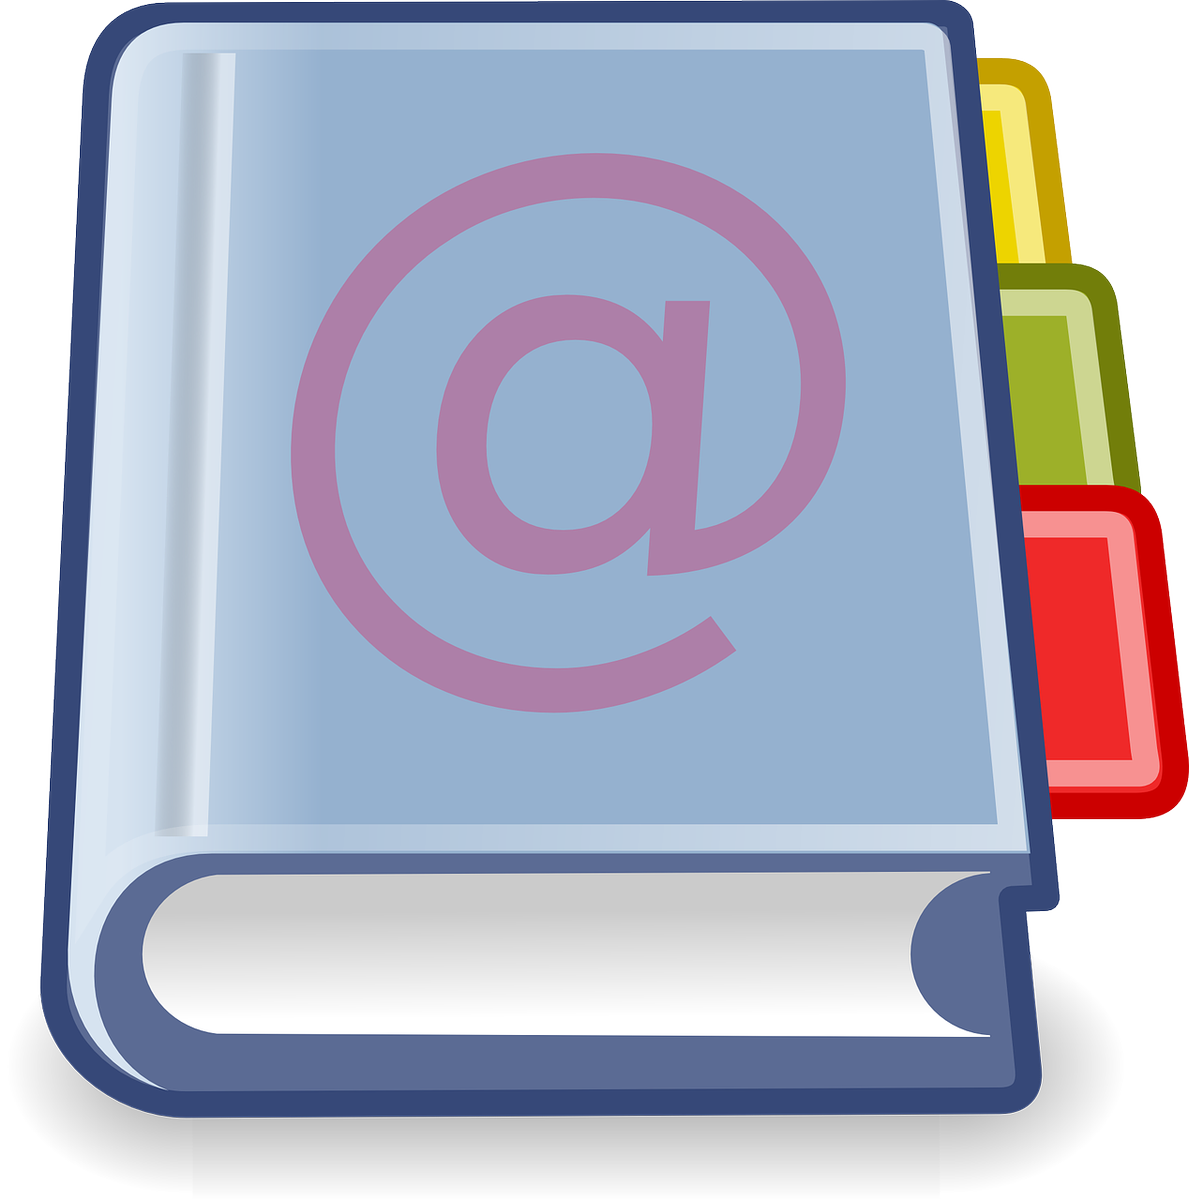 Location clipart address. Mailbox labs mailboxlabs twitter